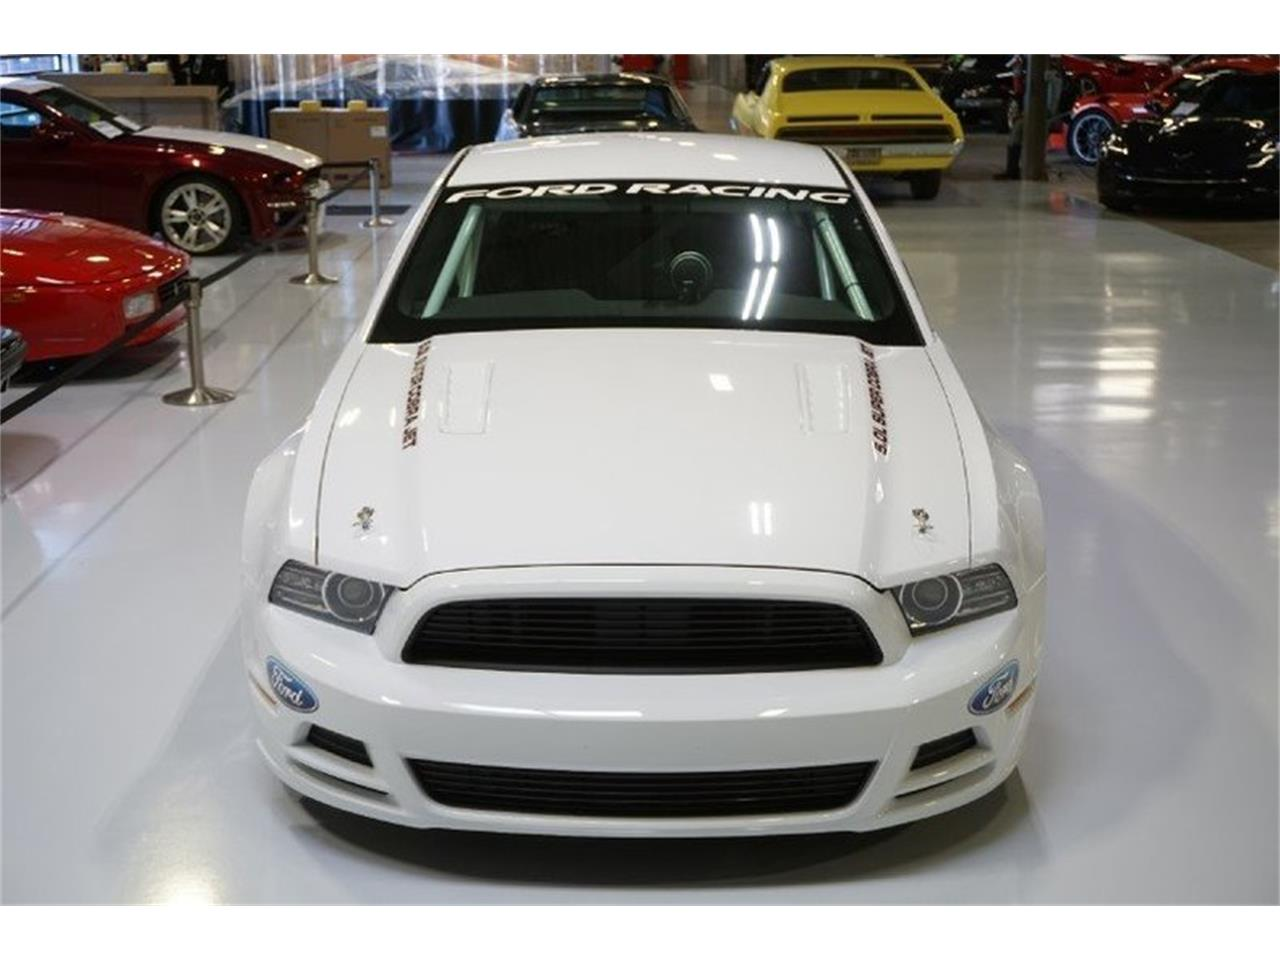 Large Picture of '14 Ford Mustang - $99,000.00 - MC66